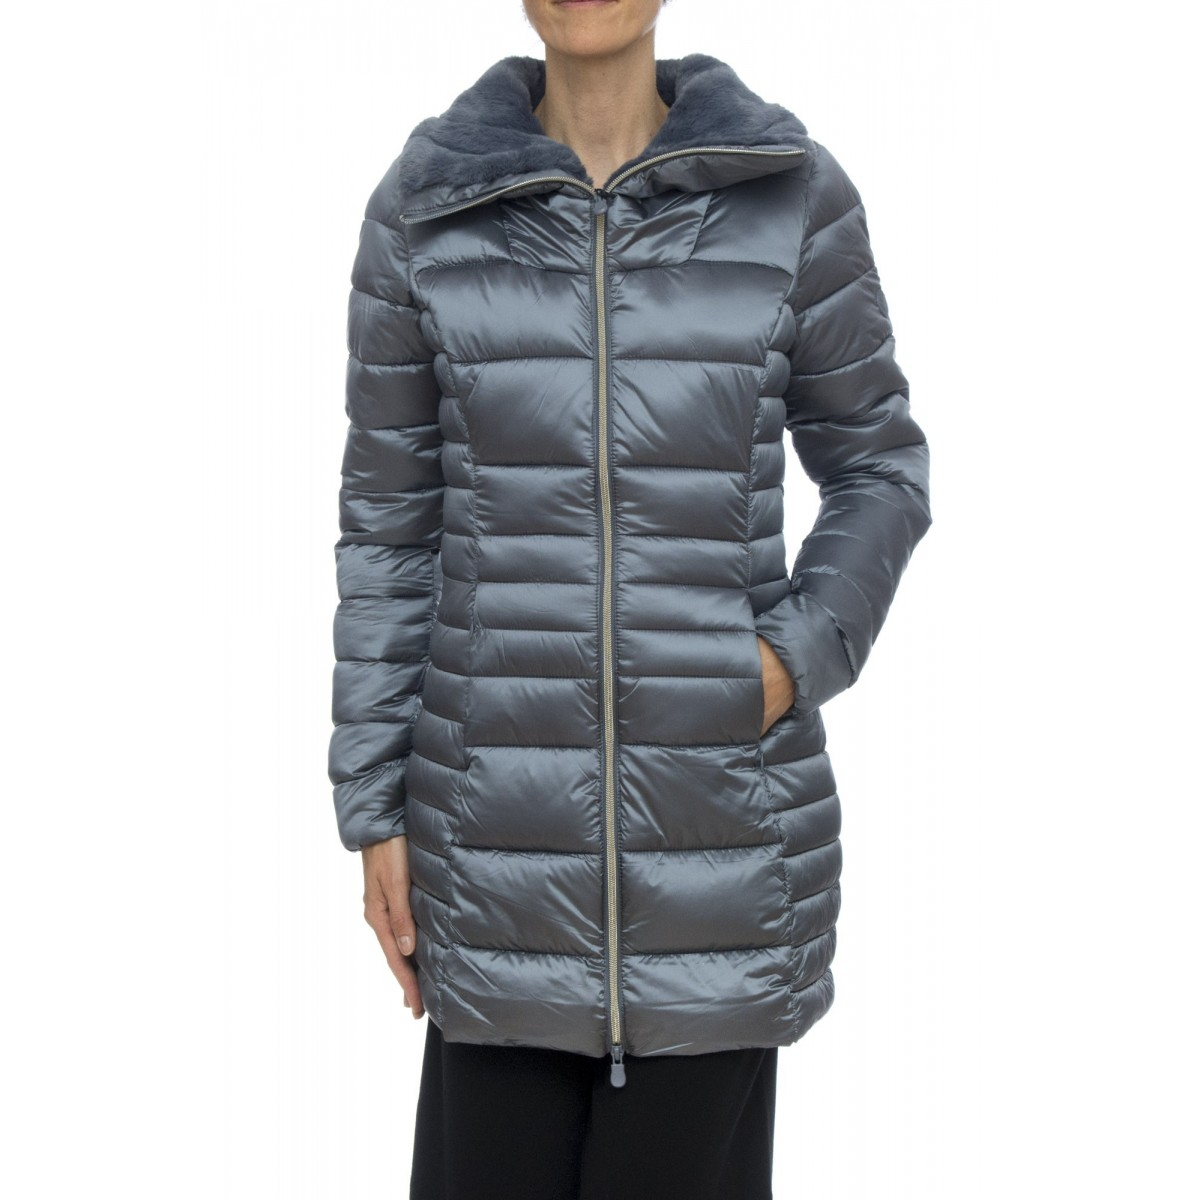 Down Jacket- D4366W Iris5 nylon-satin